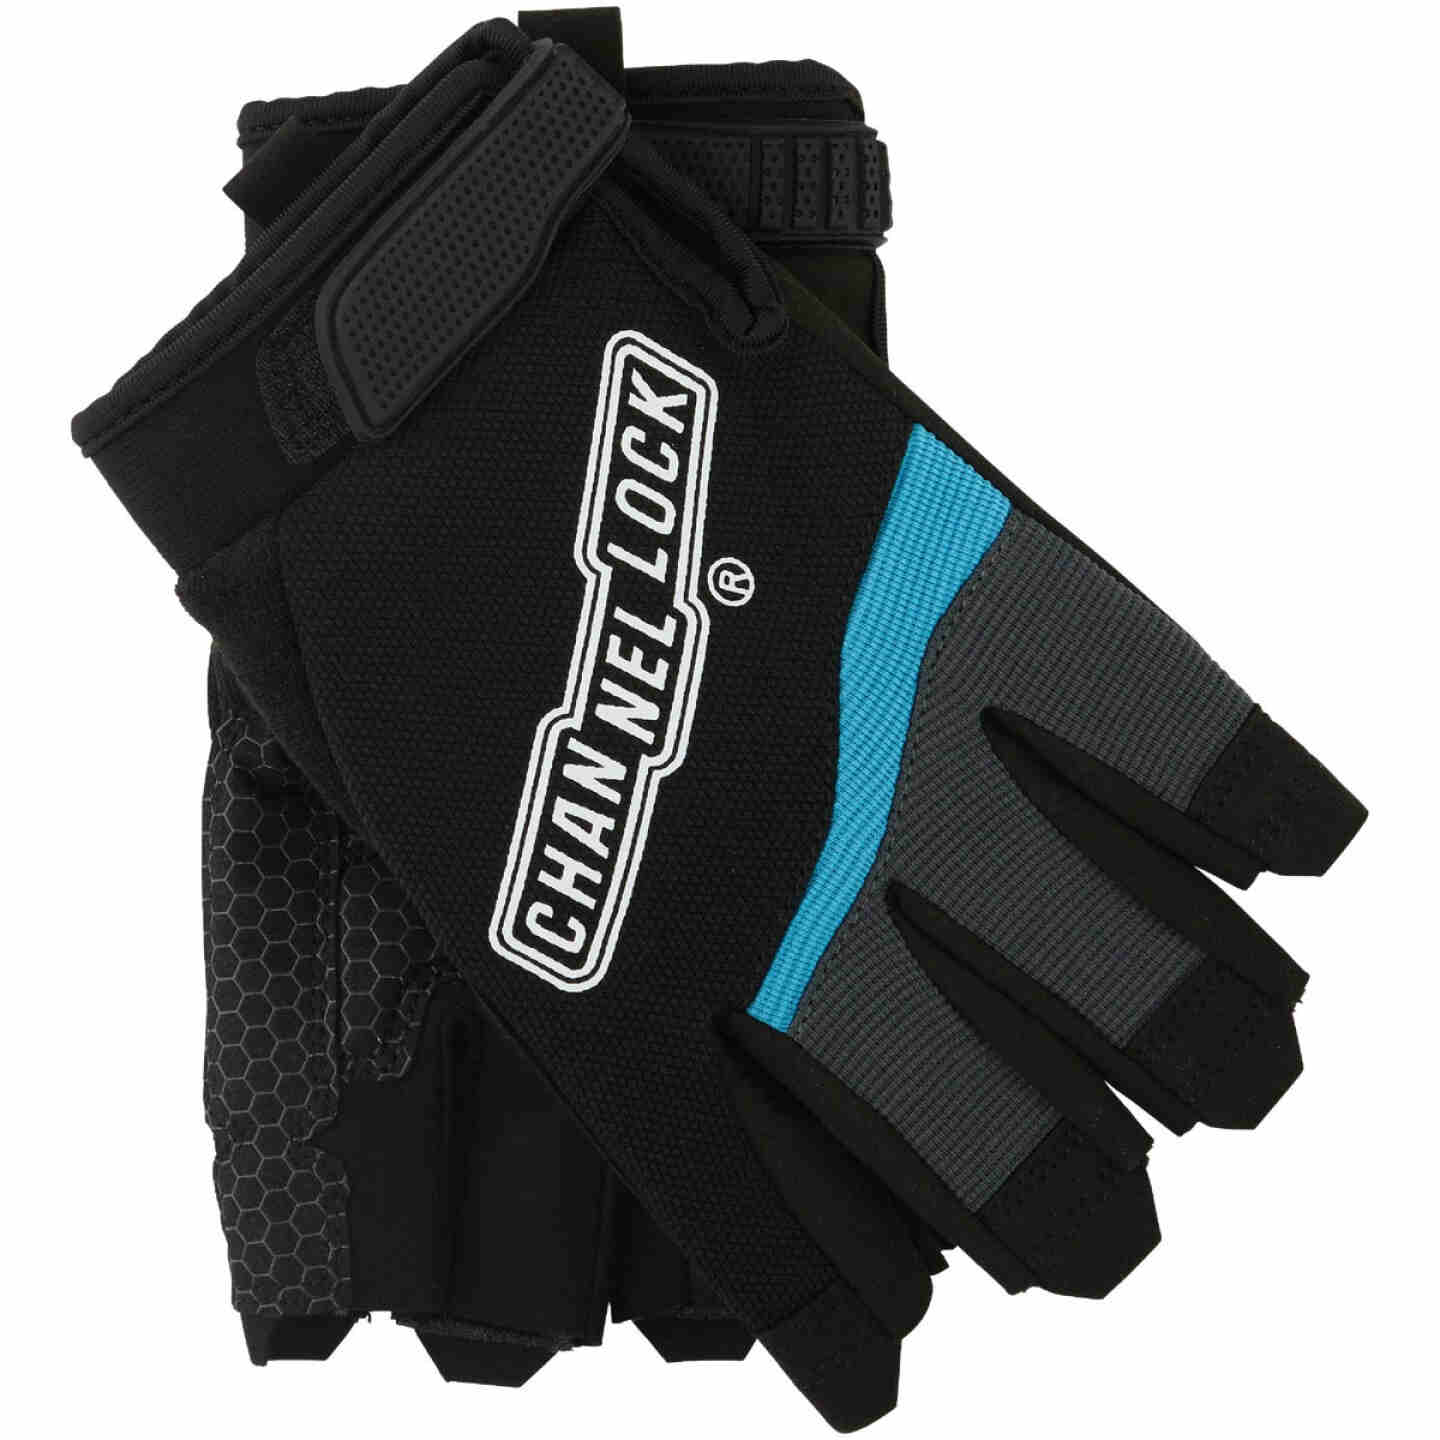 Channellock Men's XL Synthetic Fingerless Work Glove Image 1